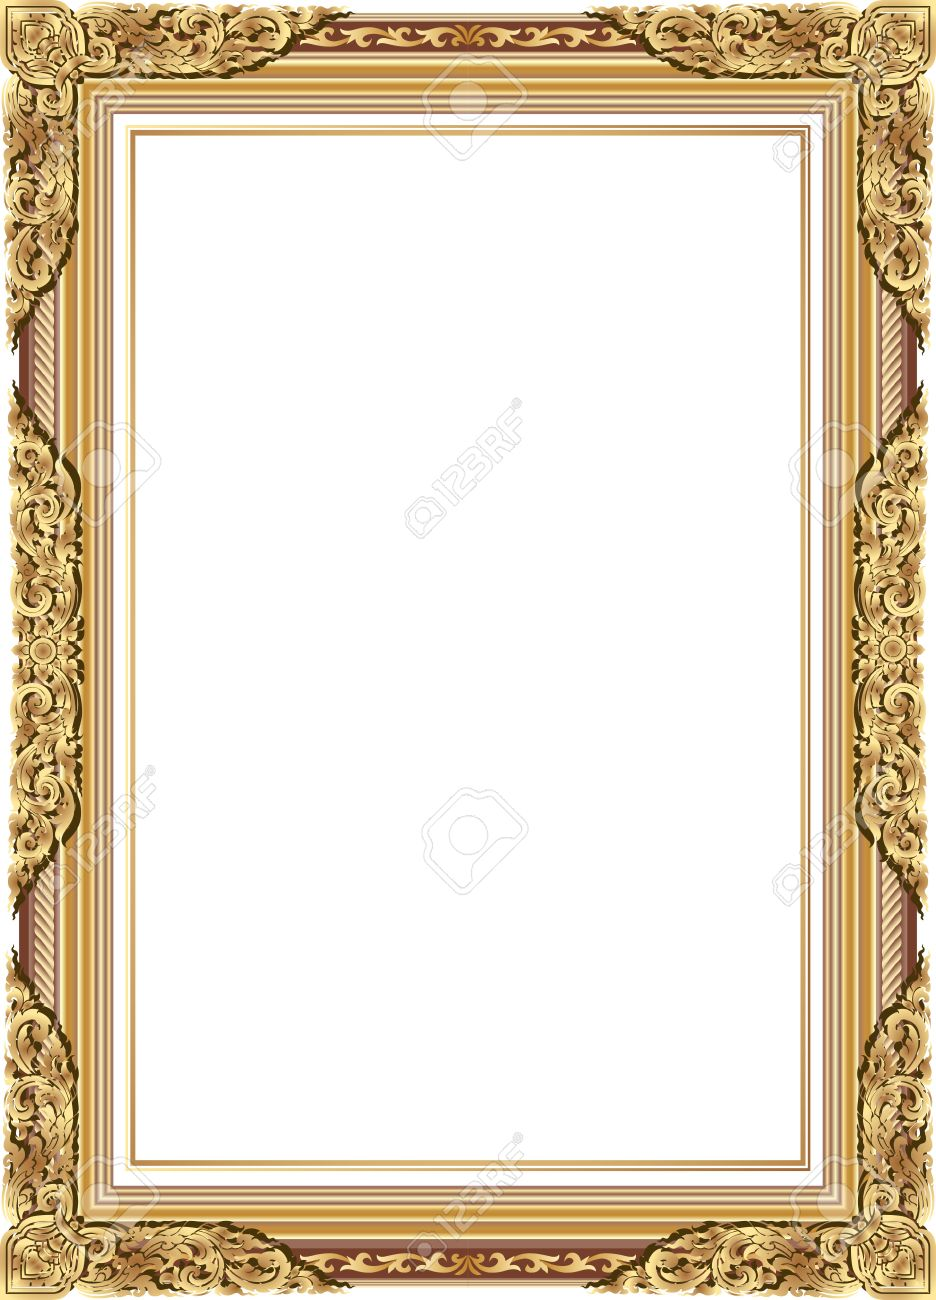 Gold Photo Frame With Corner Line Floral For Picture, Vector ...